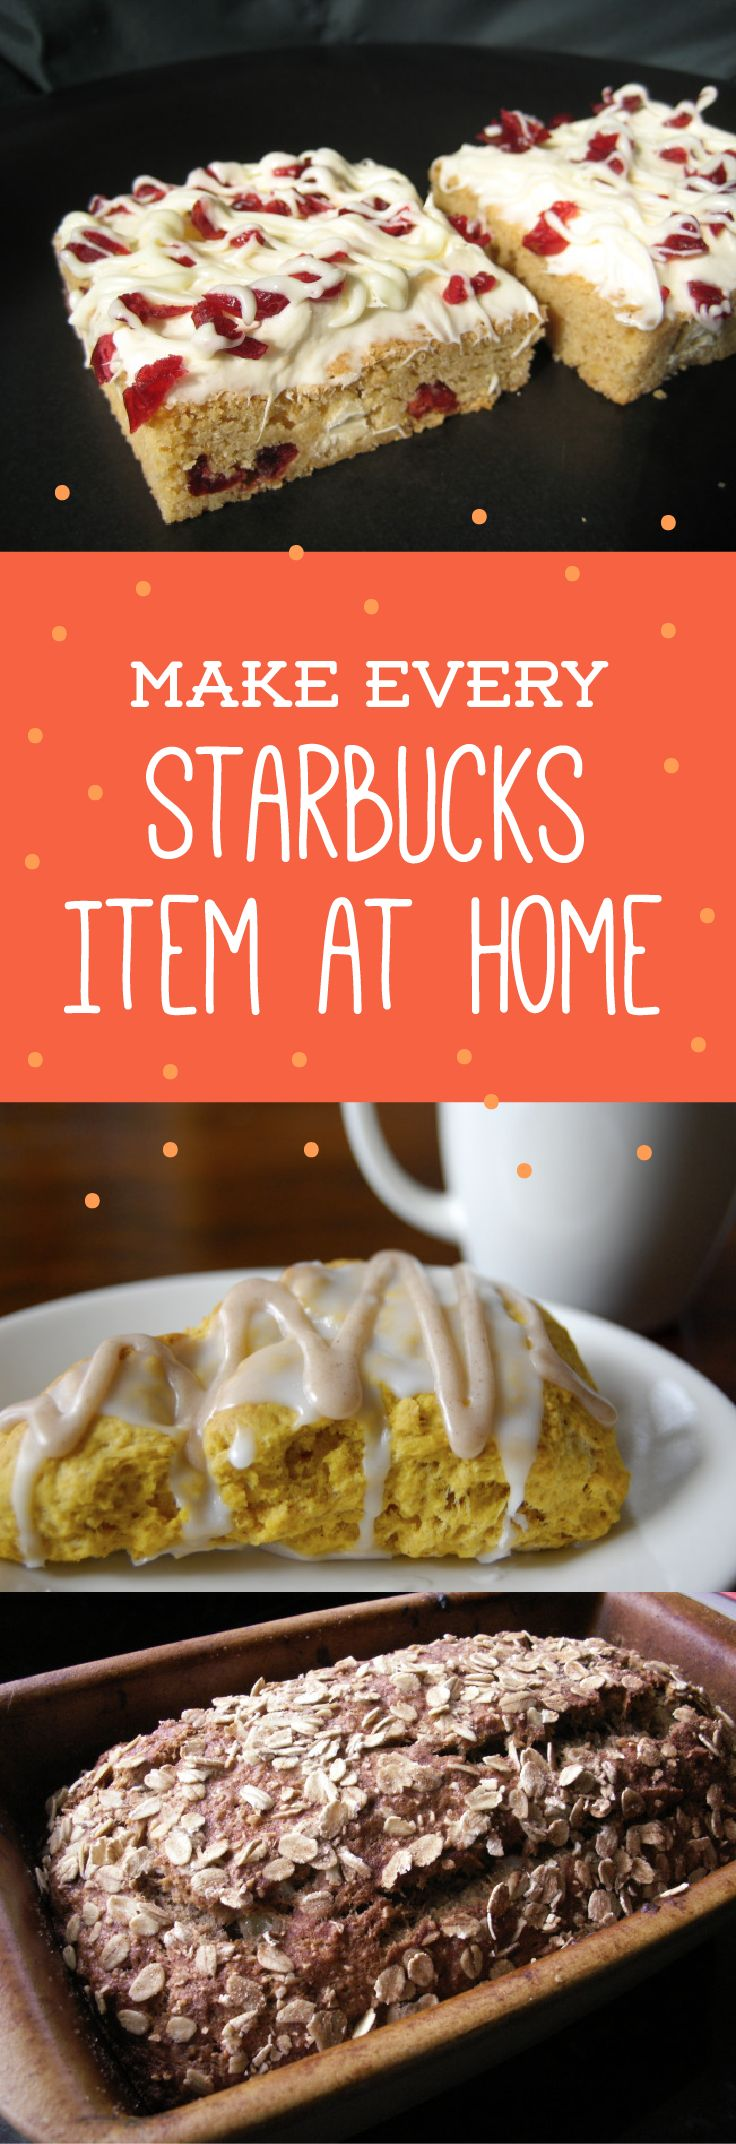 Too broke for Starbucks? Try these recipes of your favorite drinks at home and save big.